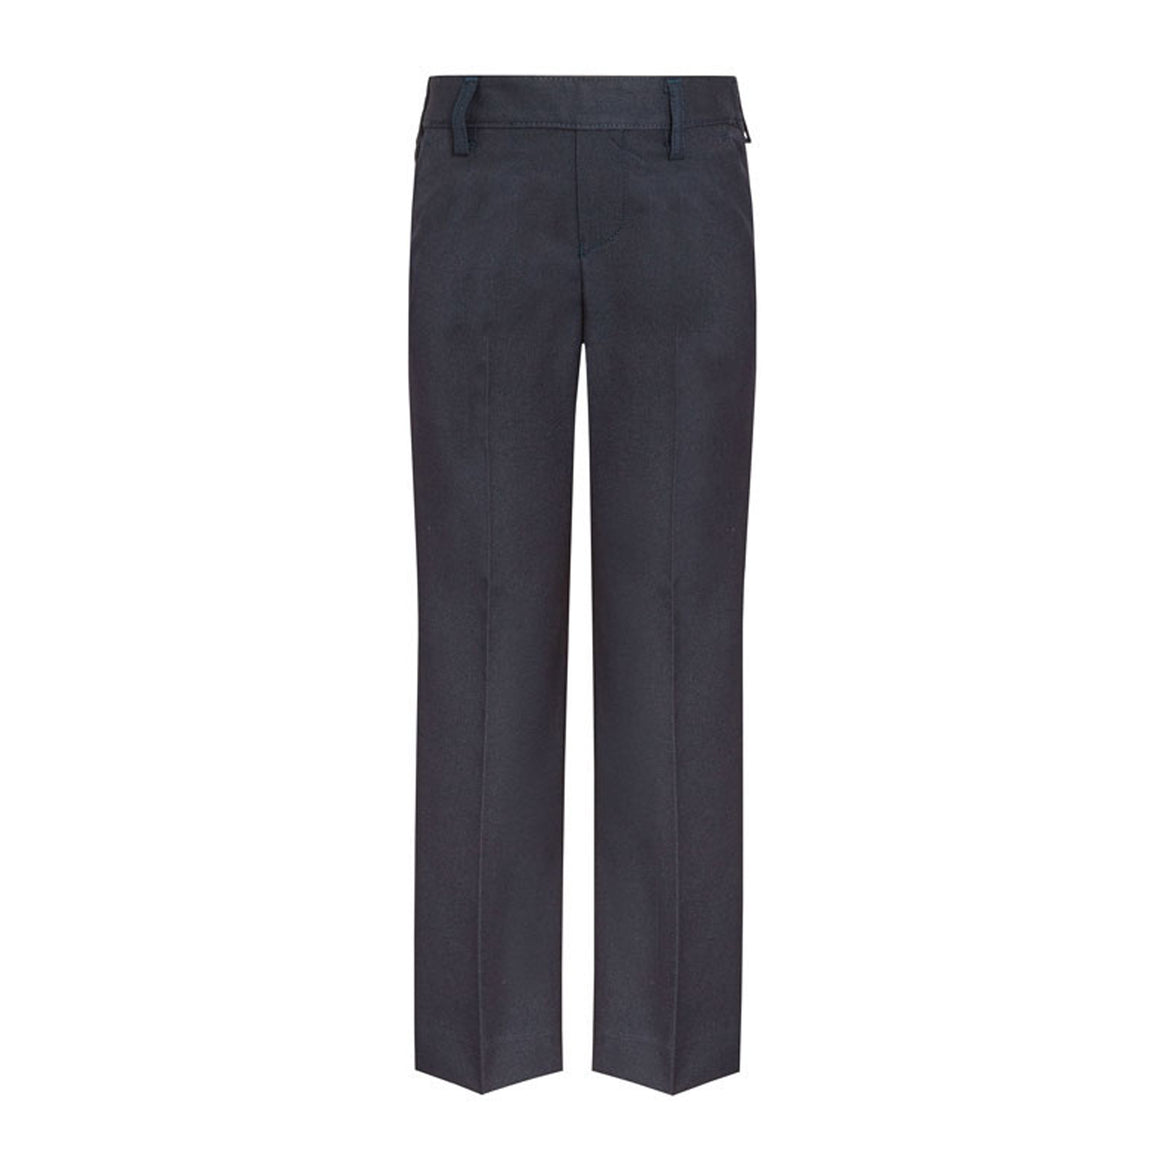 Boys Junior Trousers in Navy